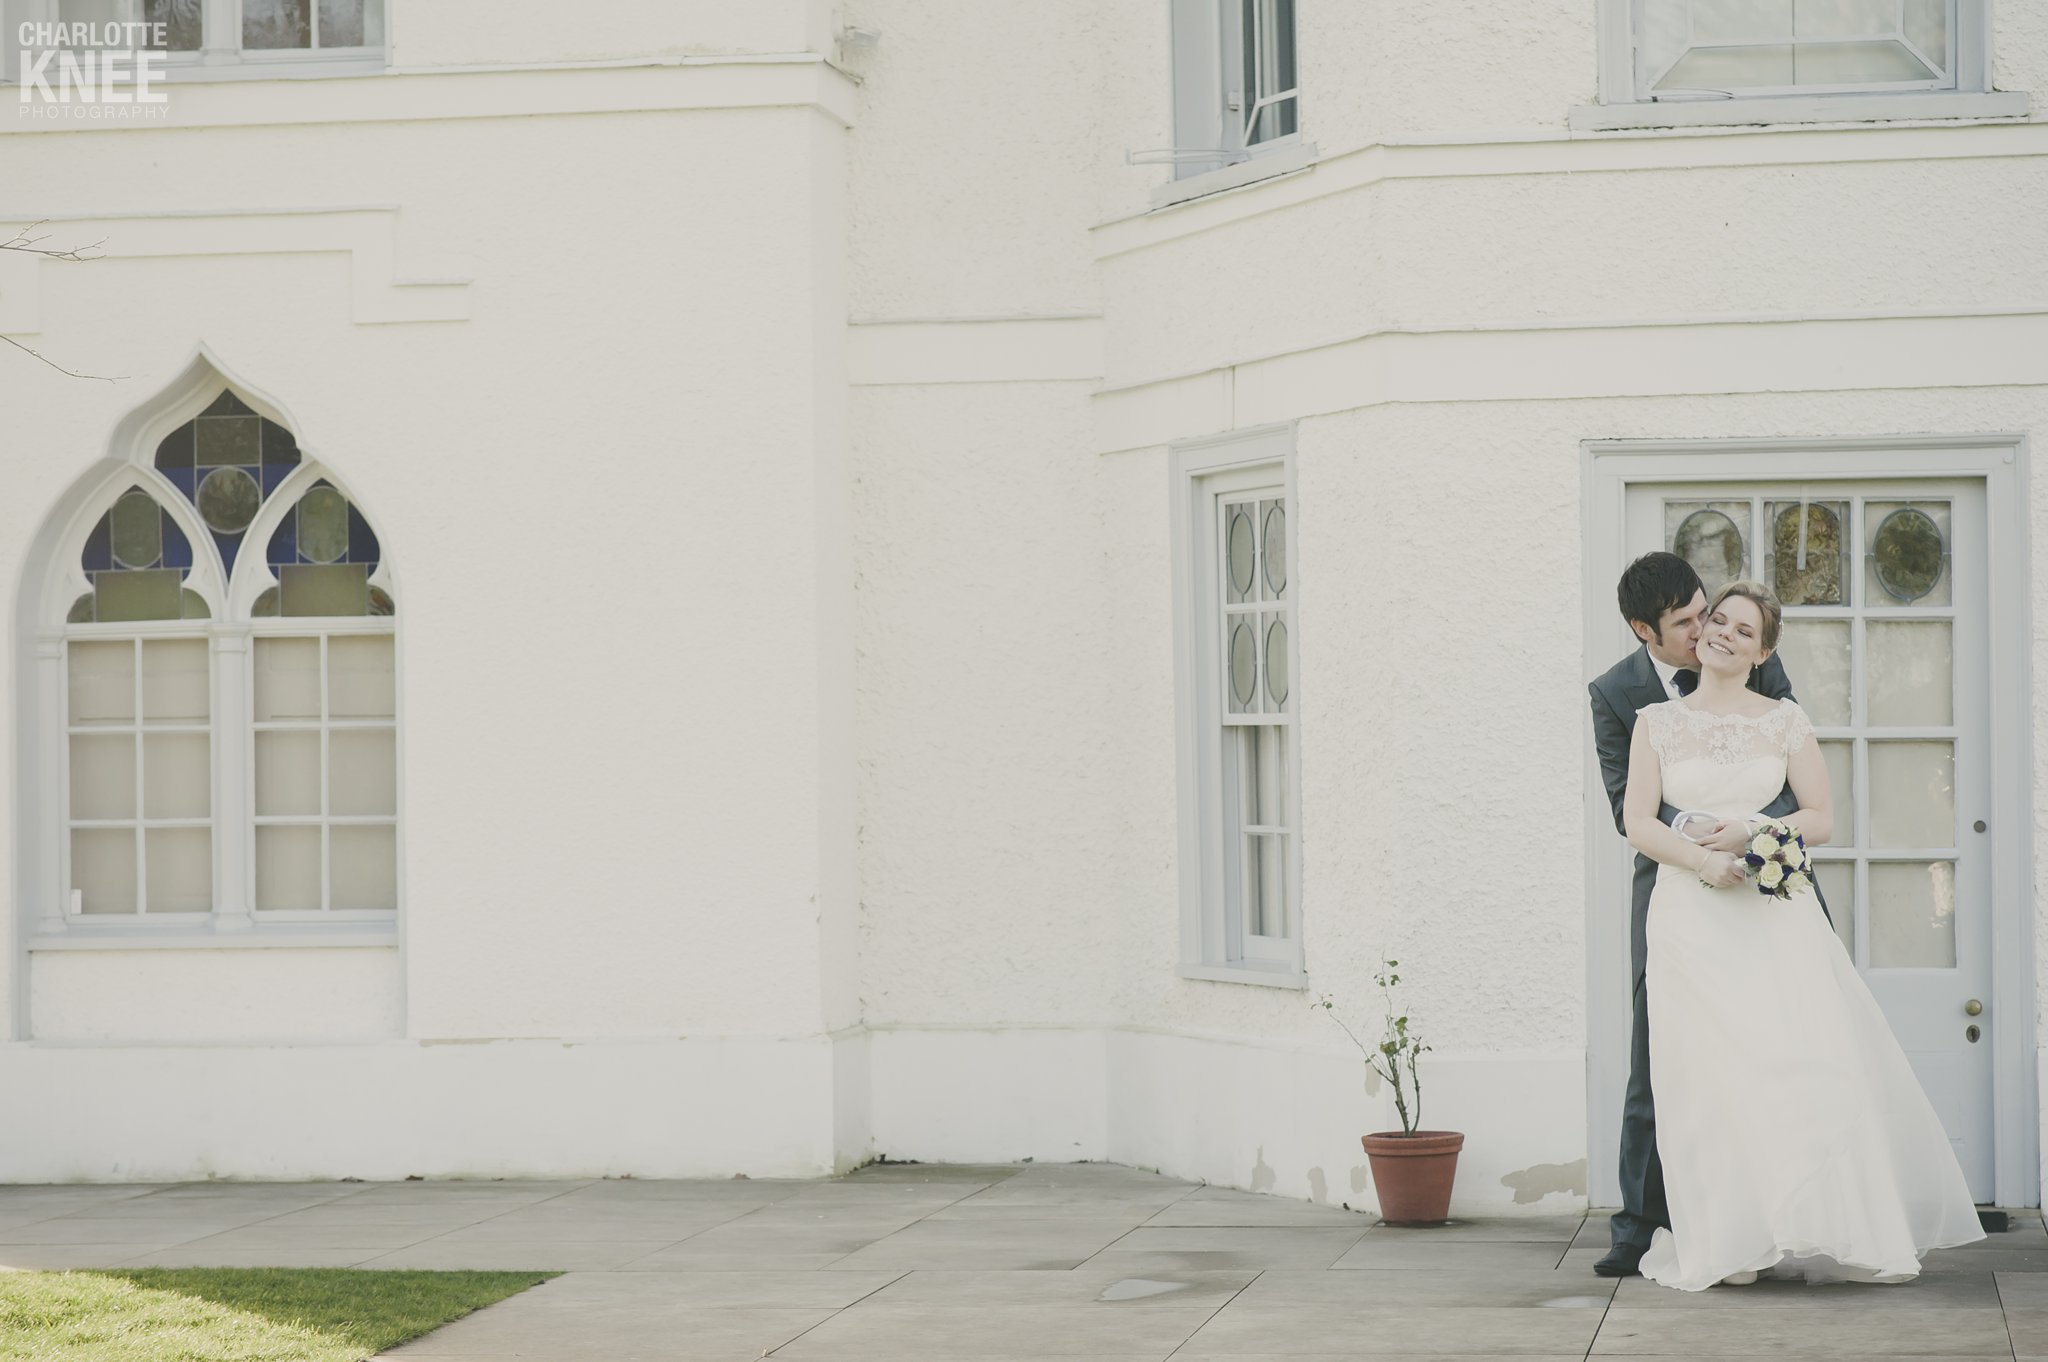 LONDON-WEDDING-PHOTOGRAPHY-STRAWBERRY-HILL-HOUSE-Charlotte-Knee-Photography_0057.jpg